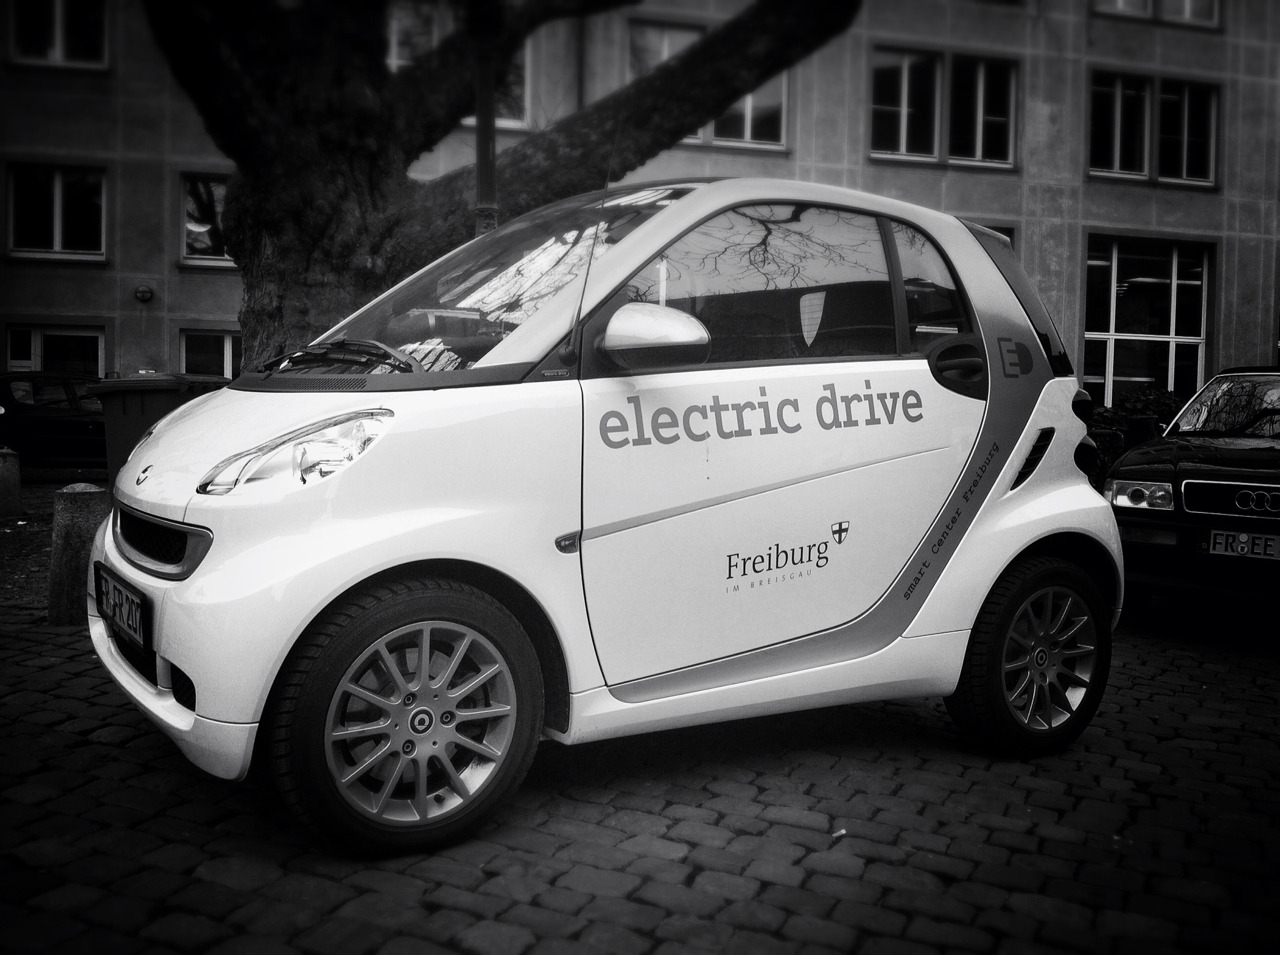 Pretty Smart, Freiburg.  Taken with Click! App, processed with Snapseed.